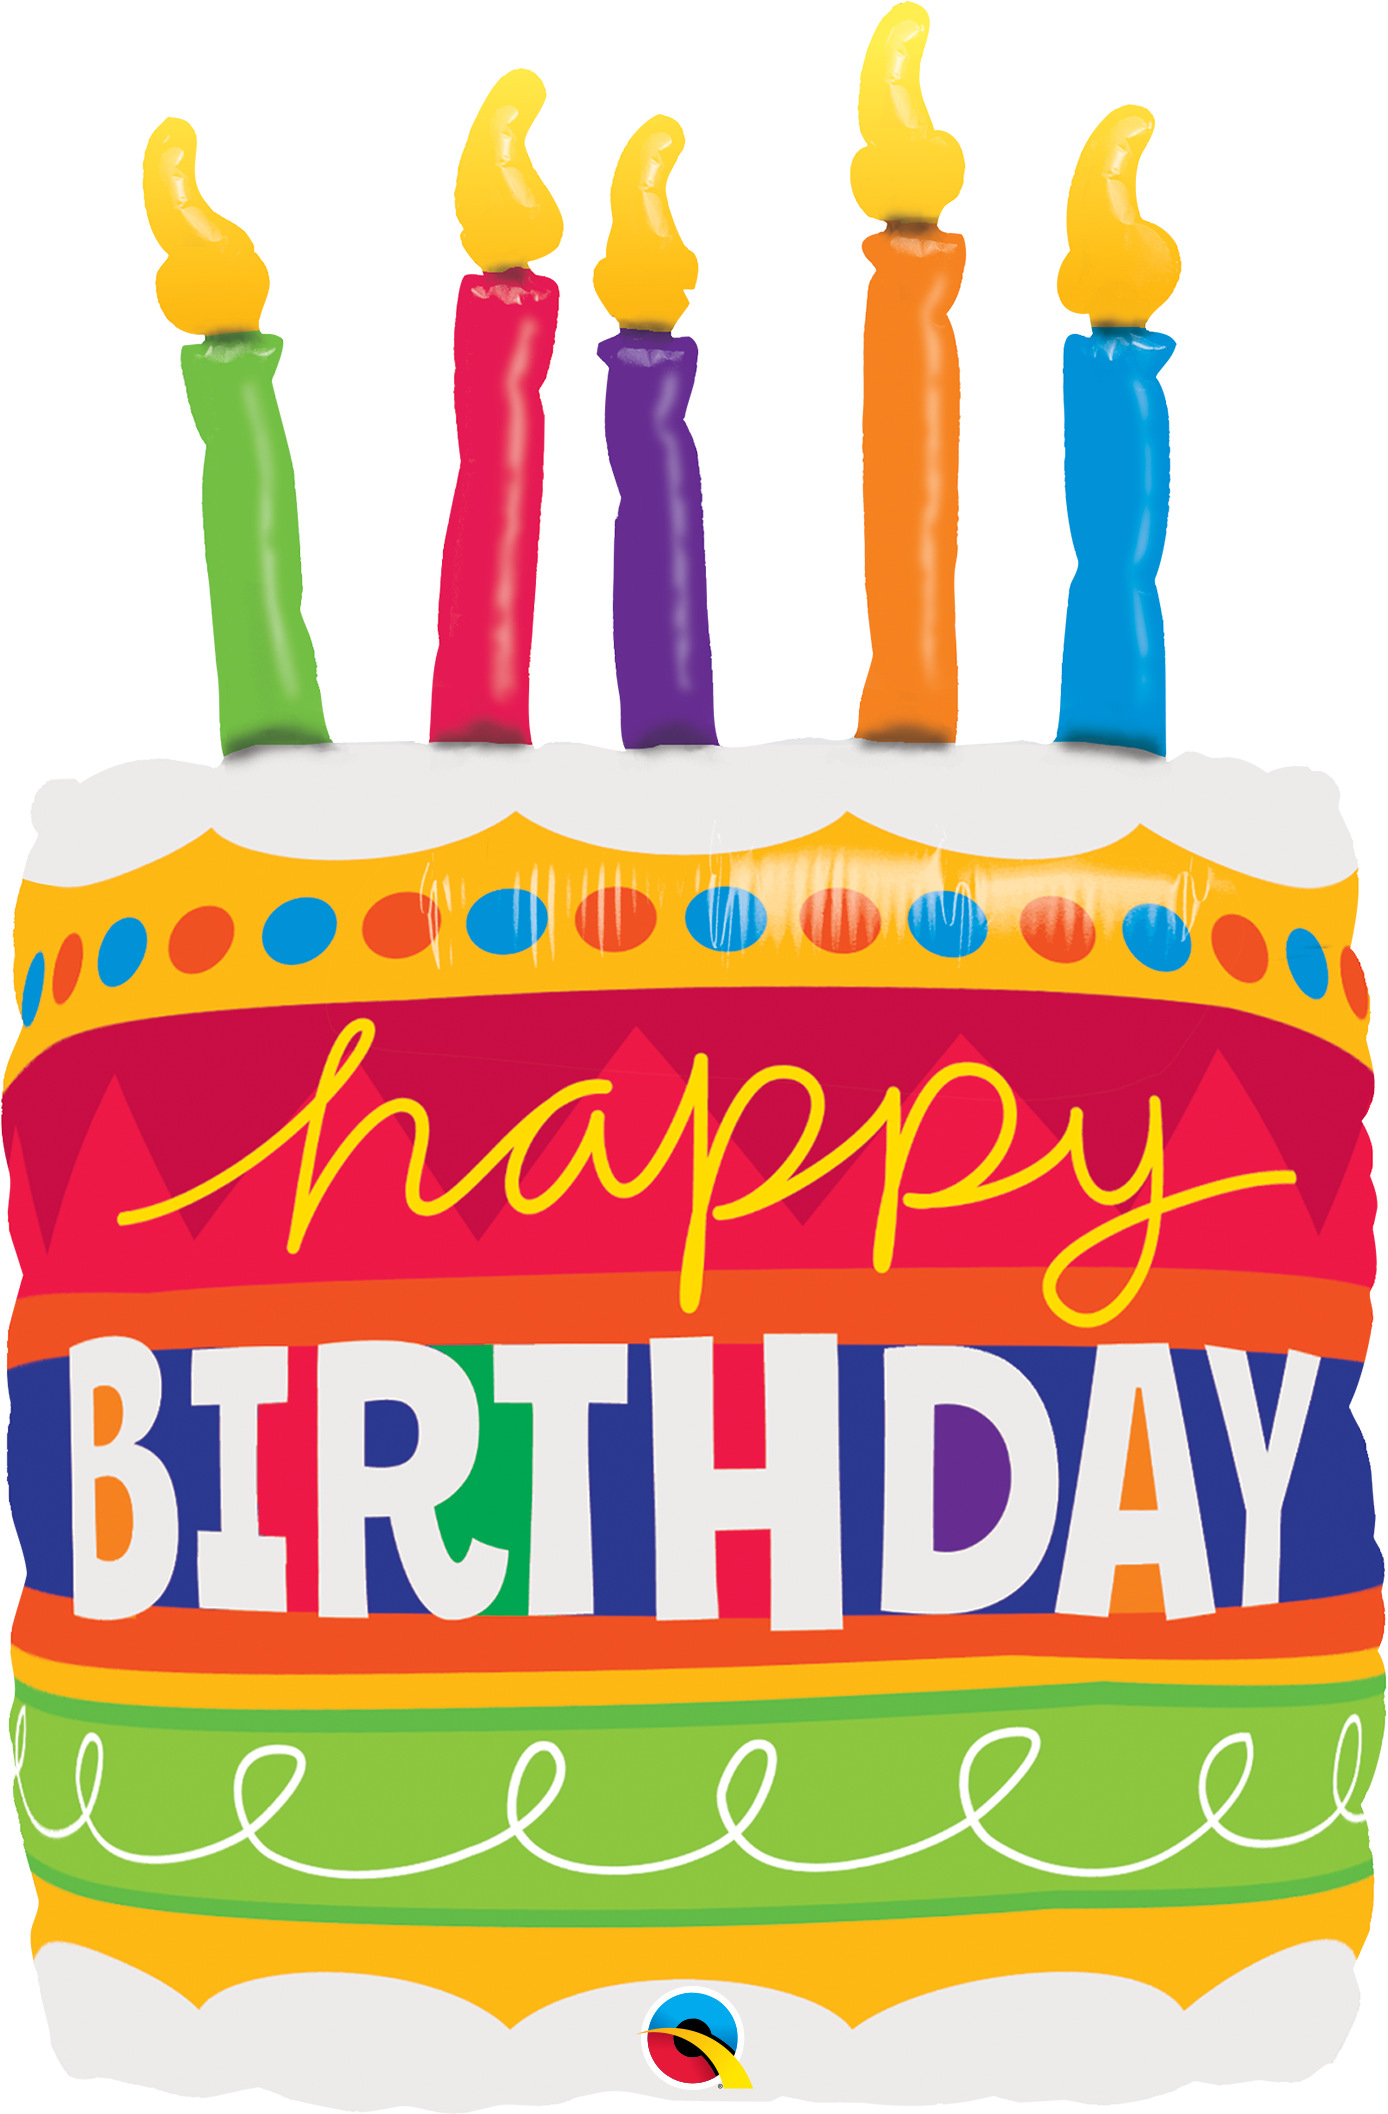 Sparkler candles png. Happy birthday cake and